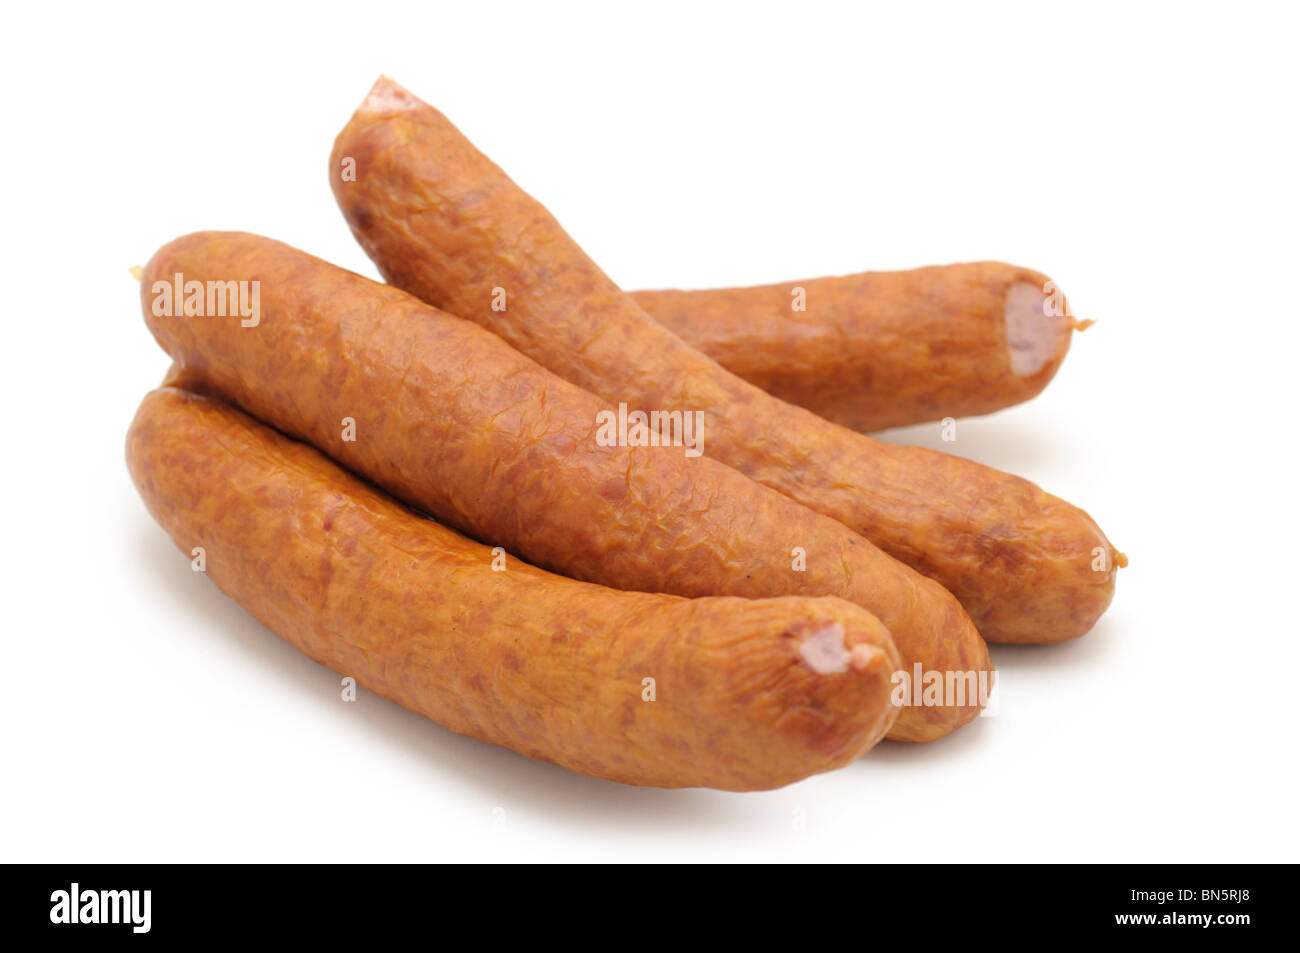 Farmer's Sausages - Stock Image